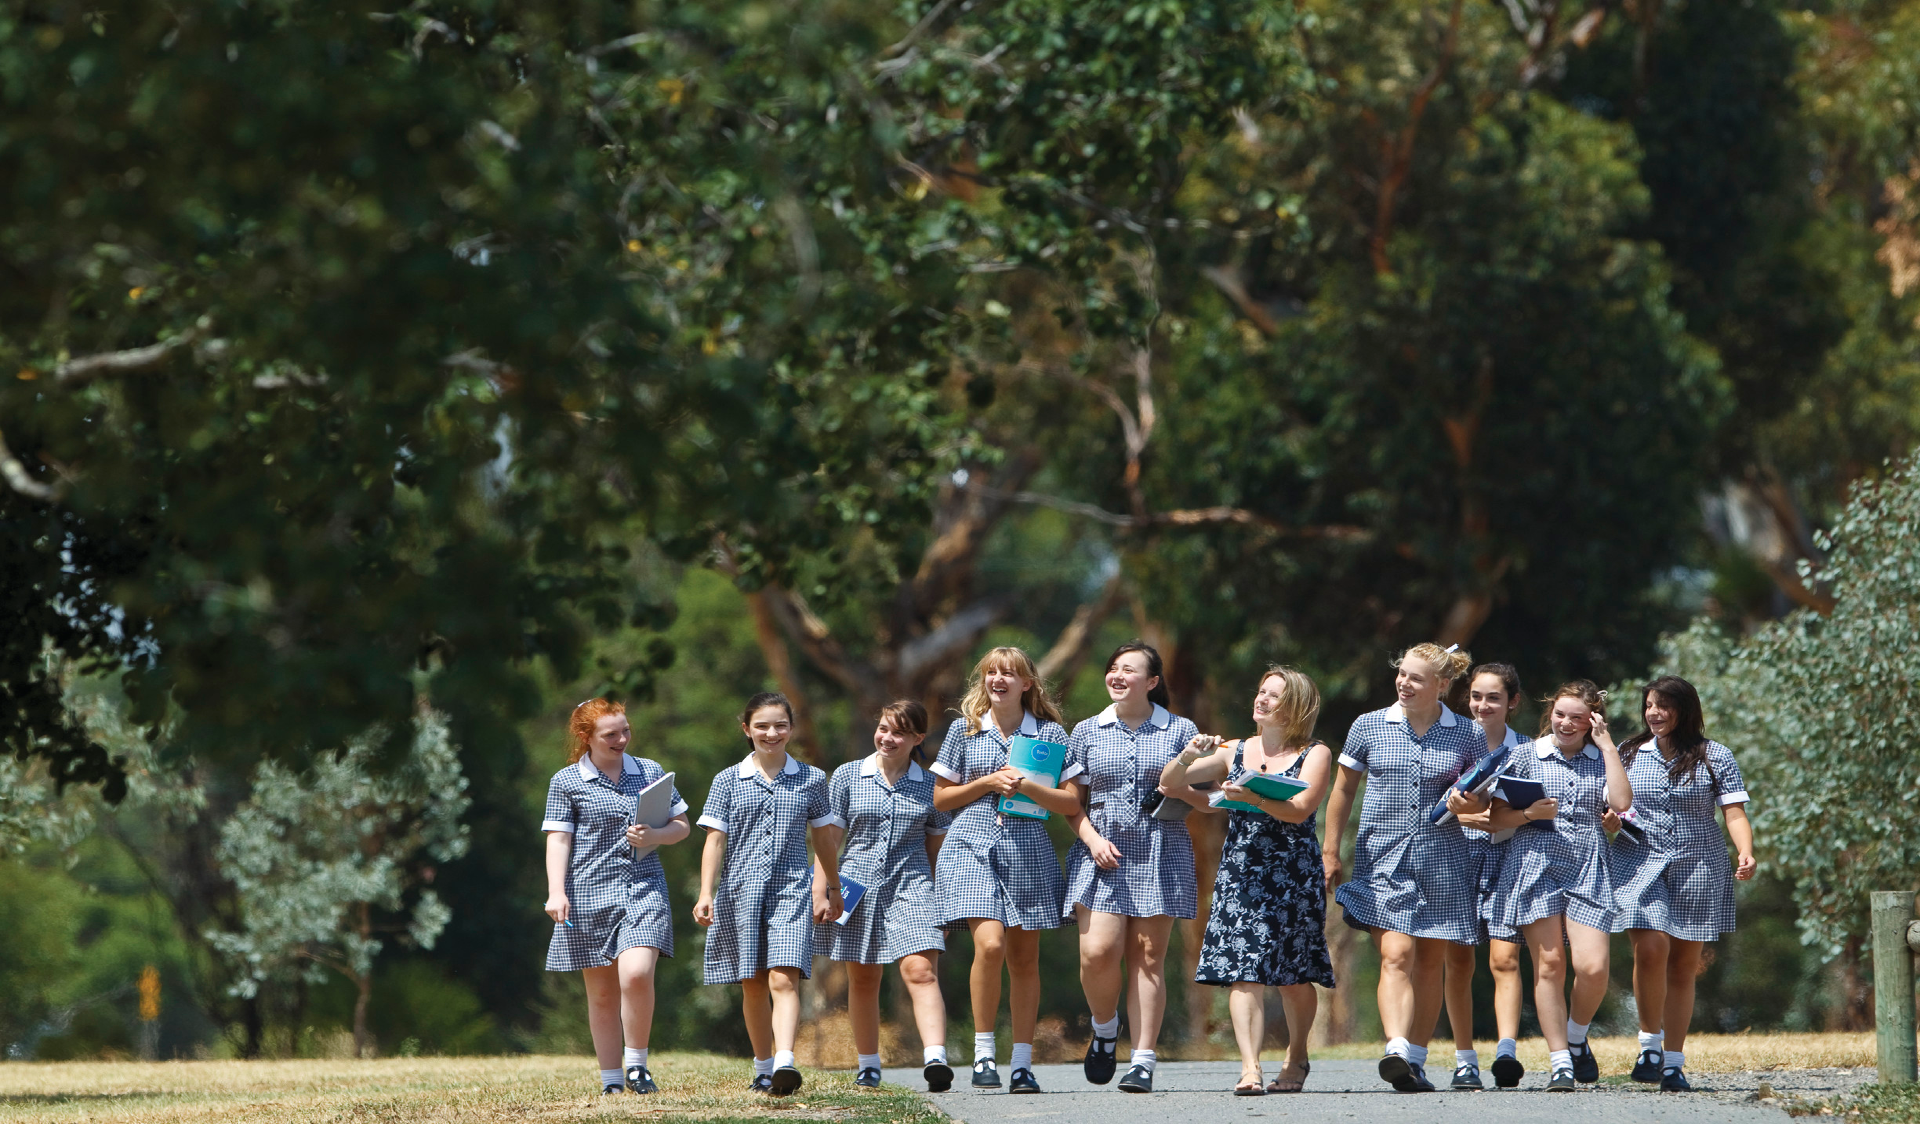 School students walking with teacher through an urban park on an excursion